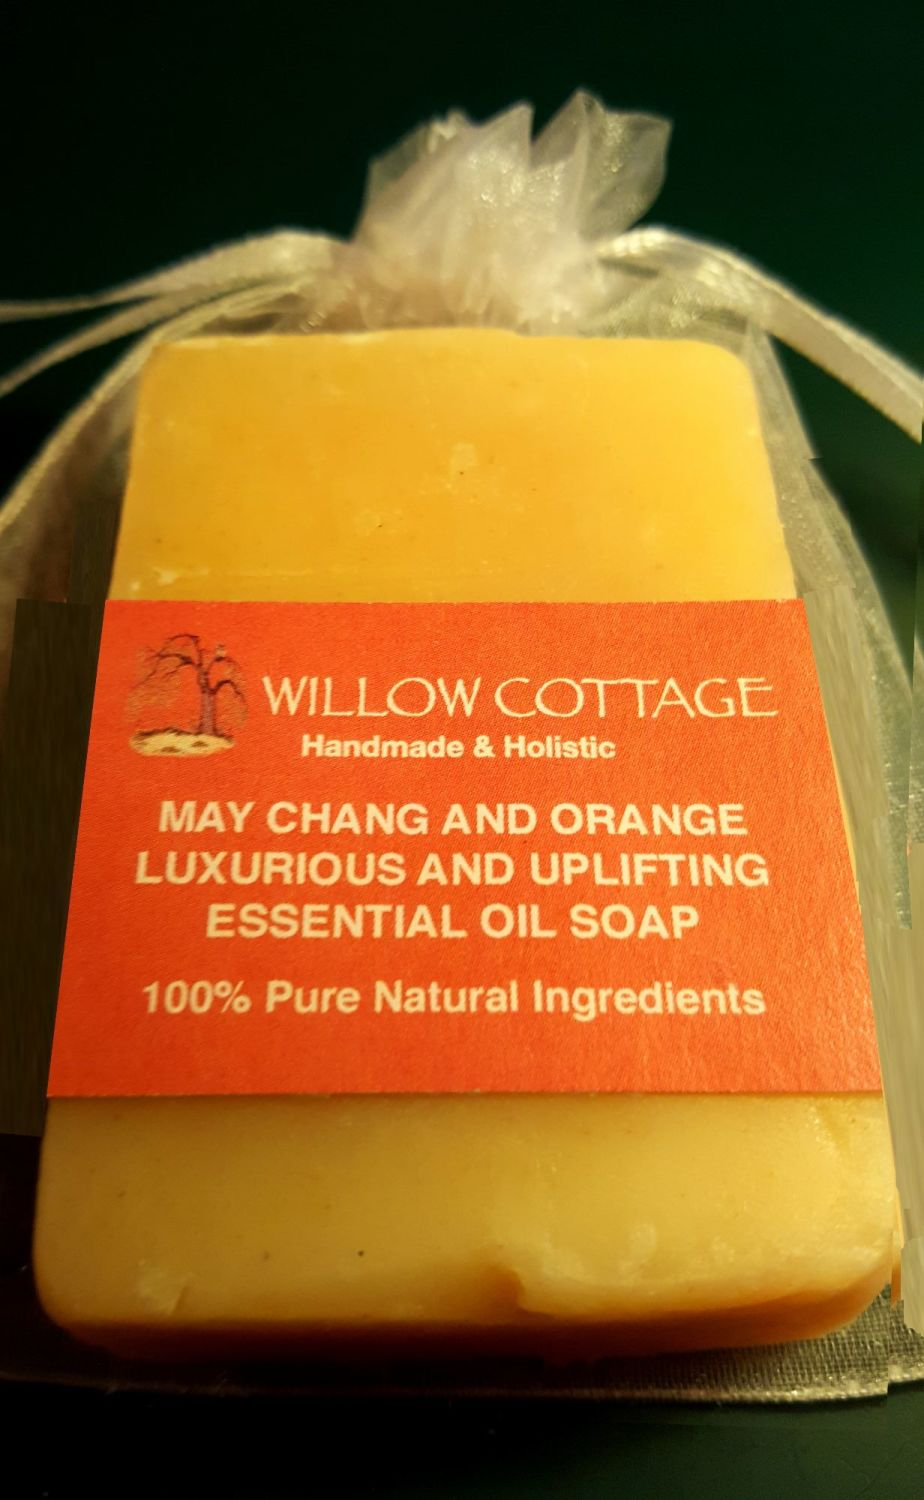 May Chang & Orange Essential Oil - Luxurious & Uplifting Soap